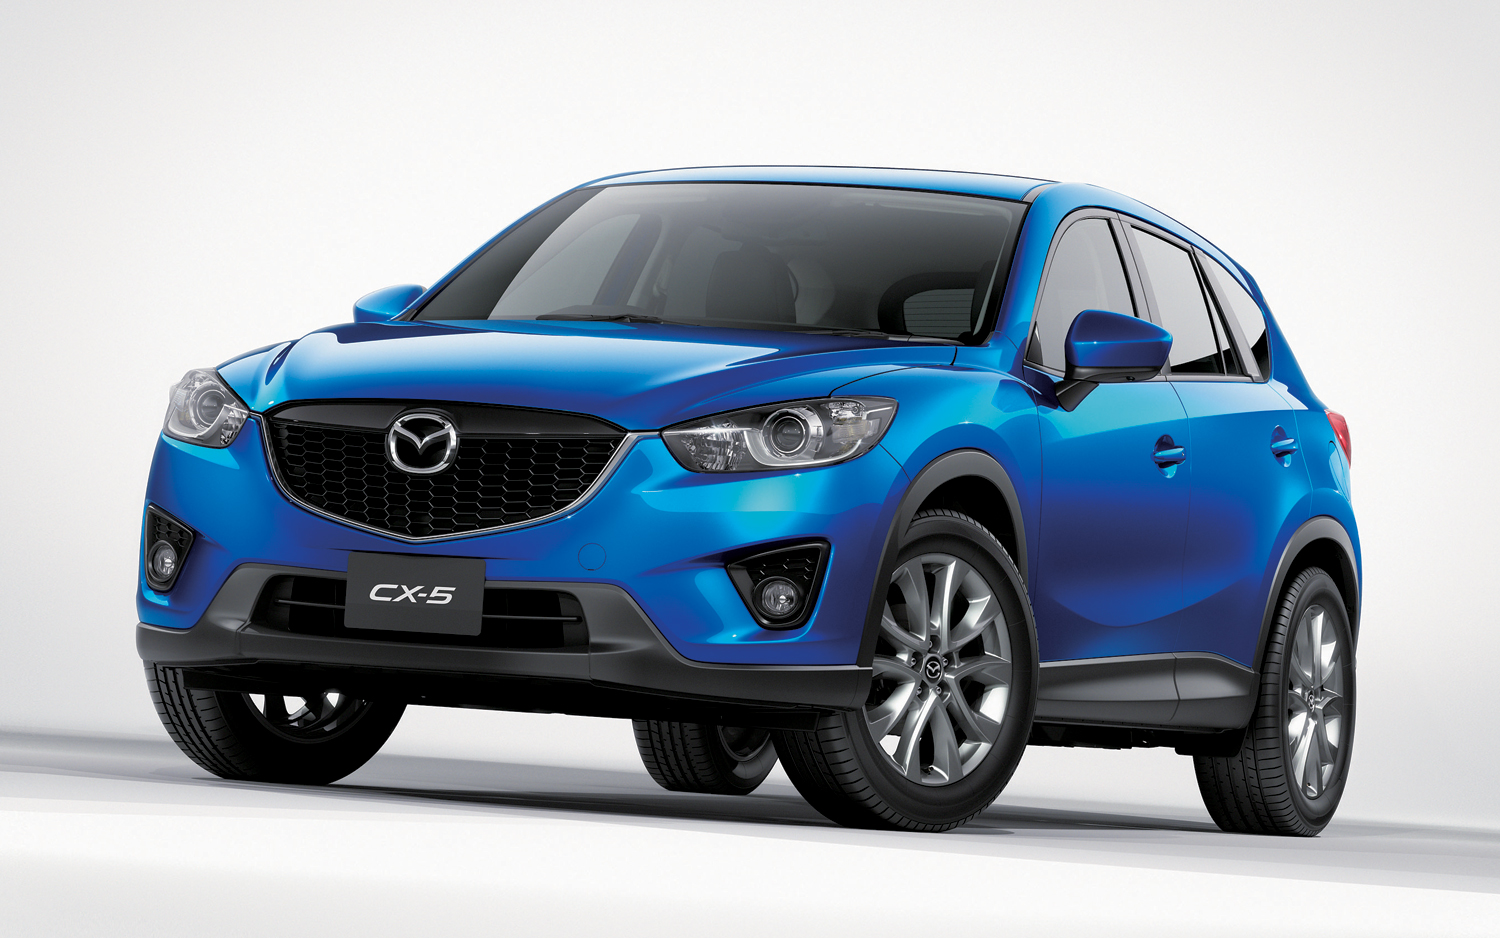 2012 Mazda CX-5 Suv 5-door